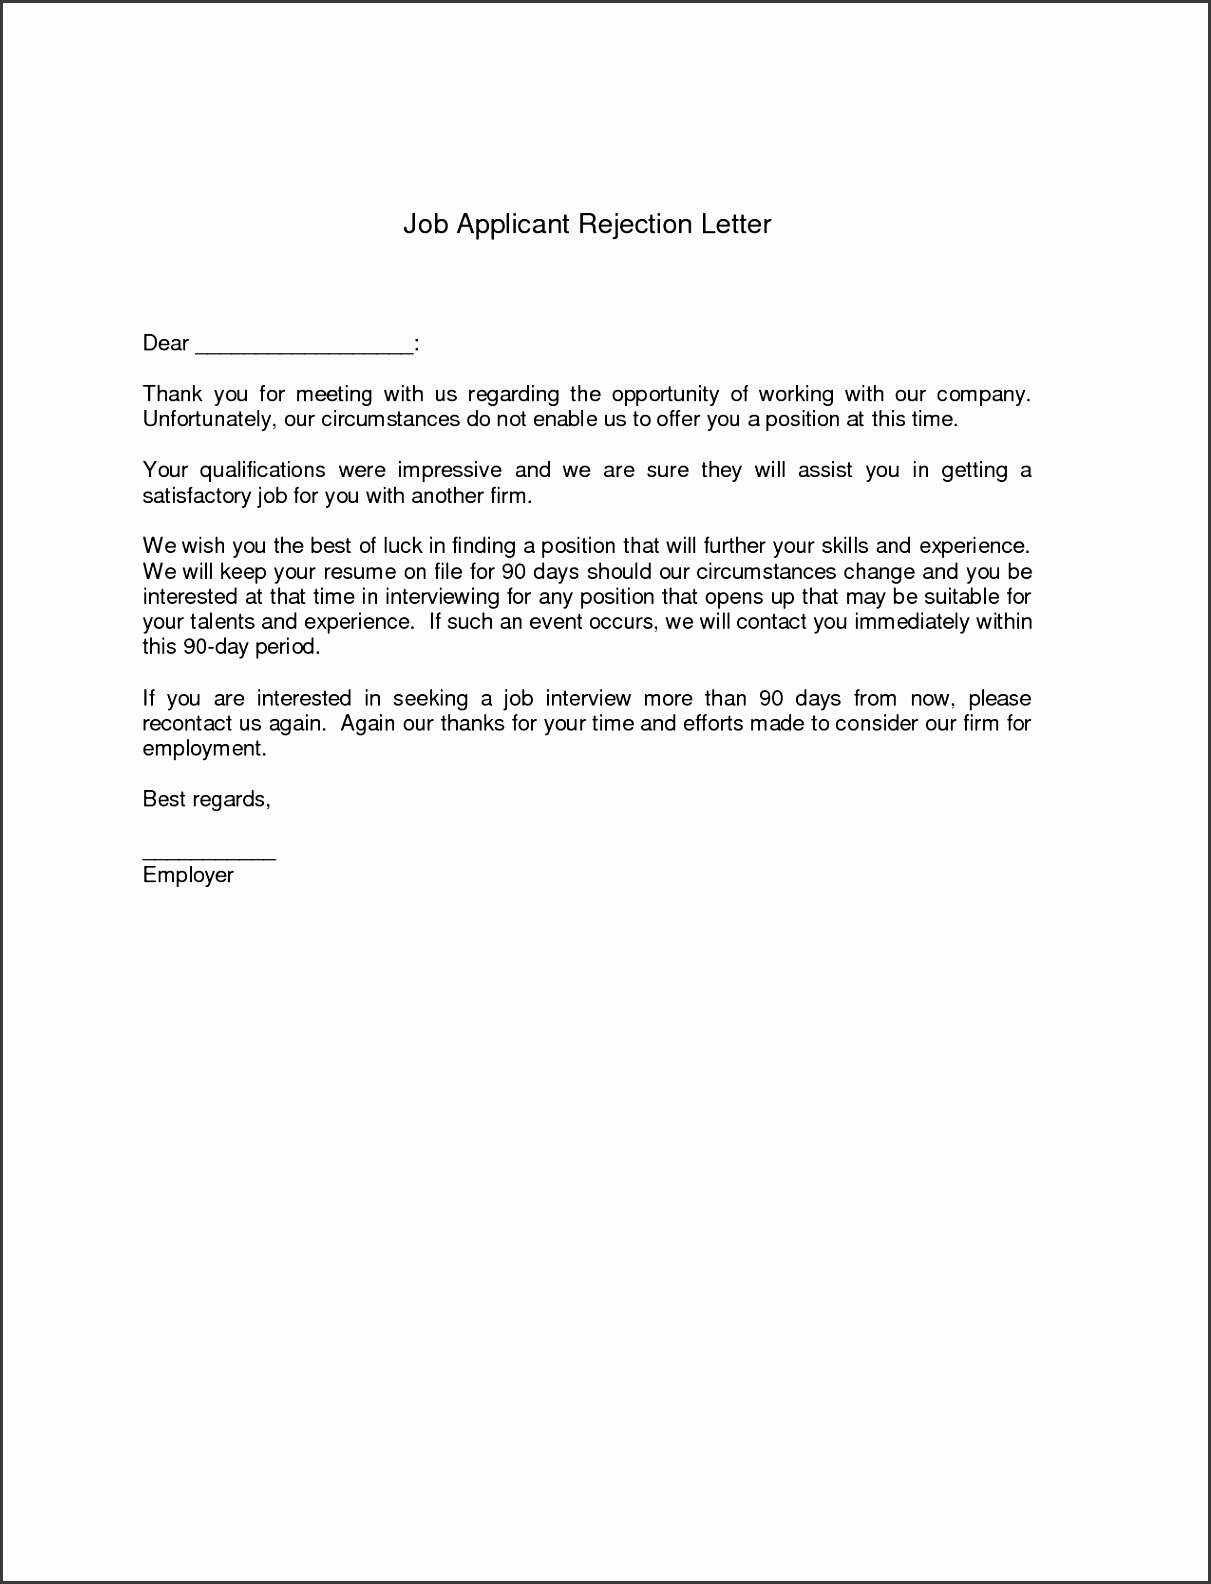 Amusing Resume Rejection Letter Template In Interview Rejection Letter Sample after Written Test Sample